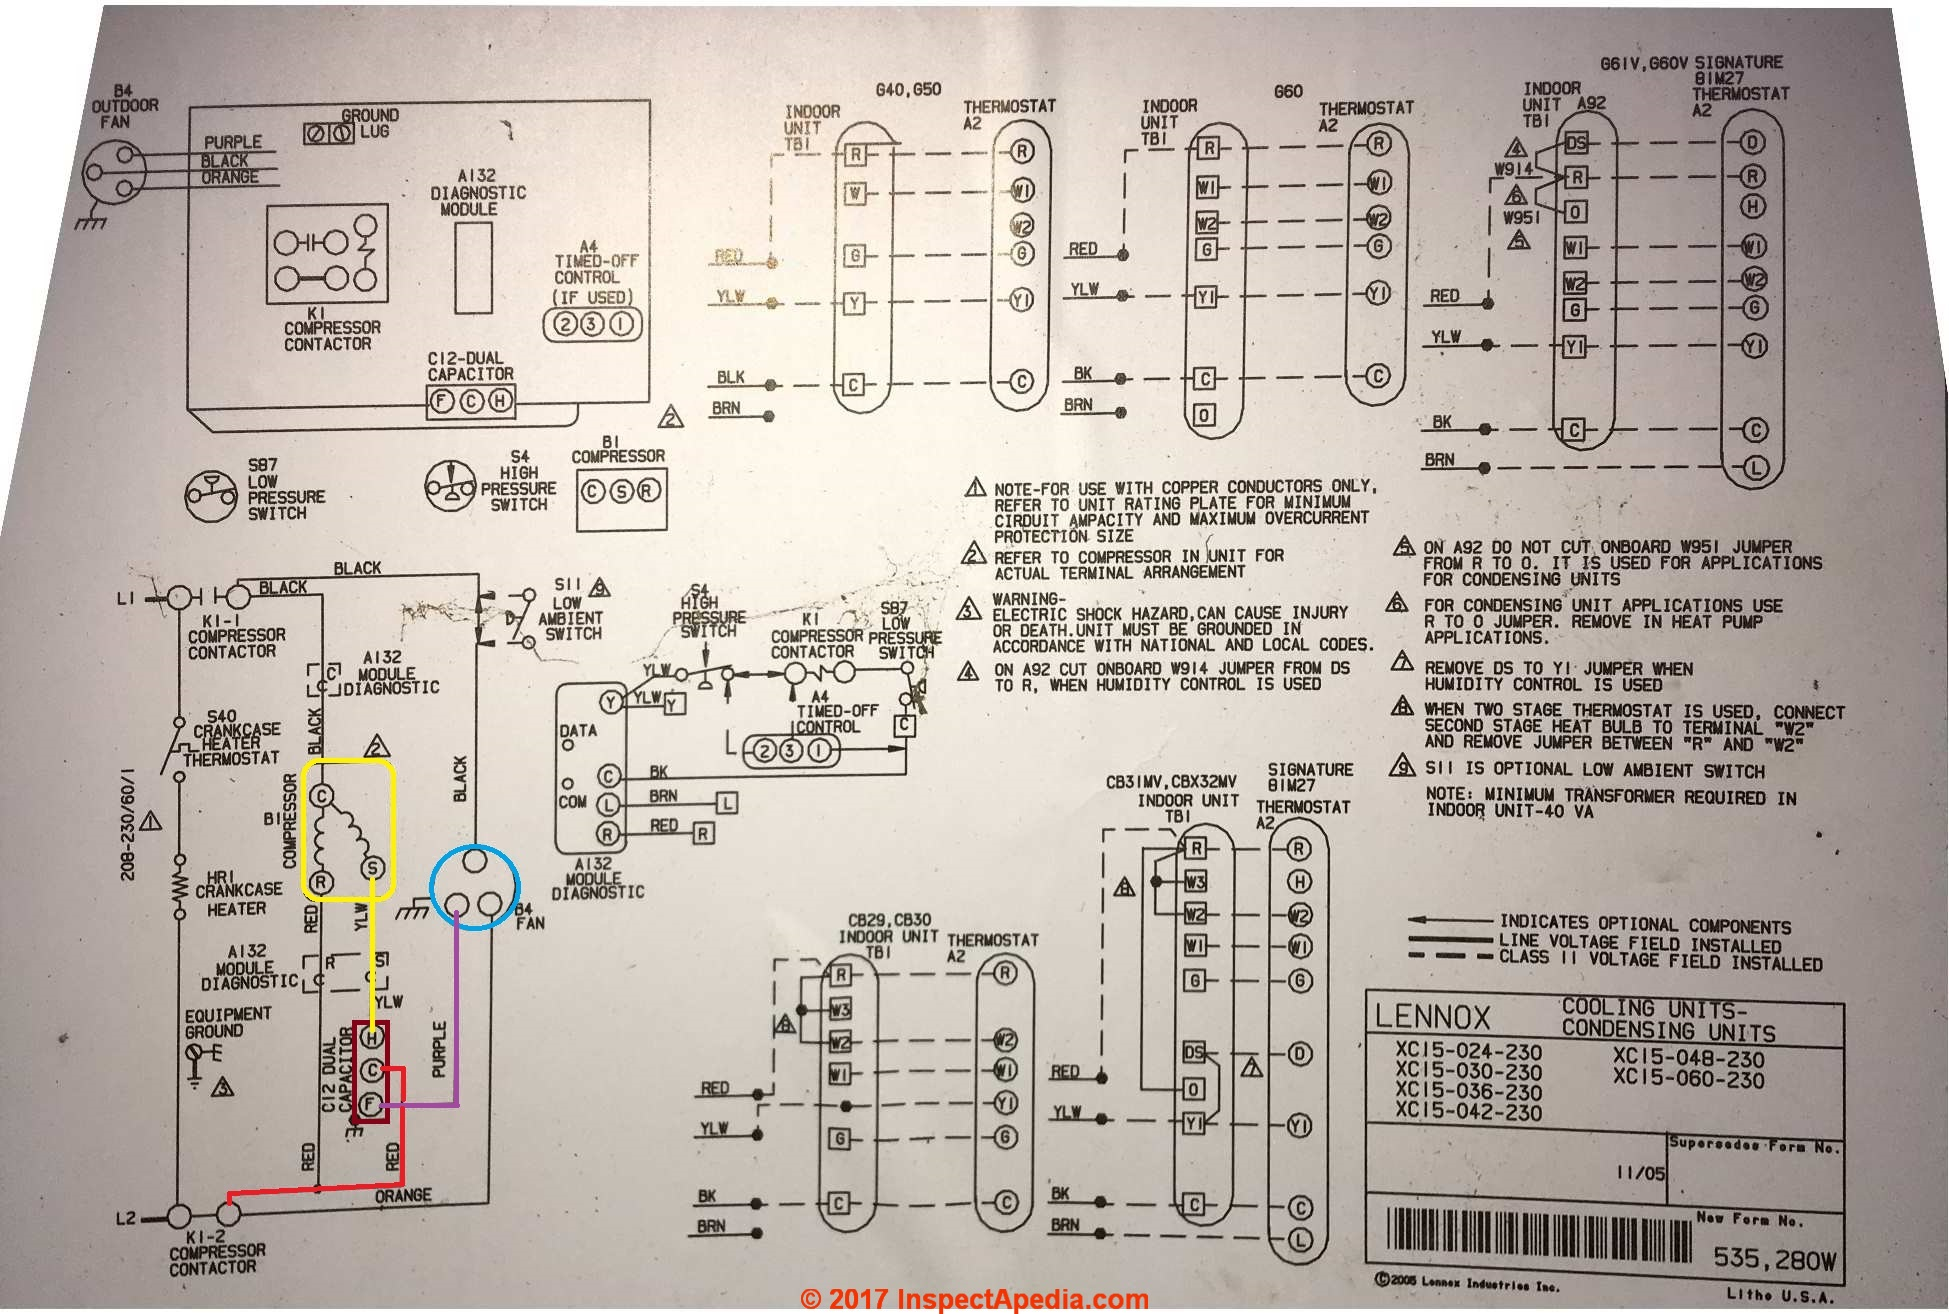 Electric Motor Starting Run Capacitor Types Installation Guide To Lx255 Wiring Diagram Lennox Xc15 Condenser Unit C Inspectapediacom Showing Connections